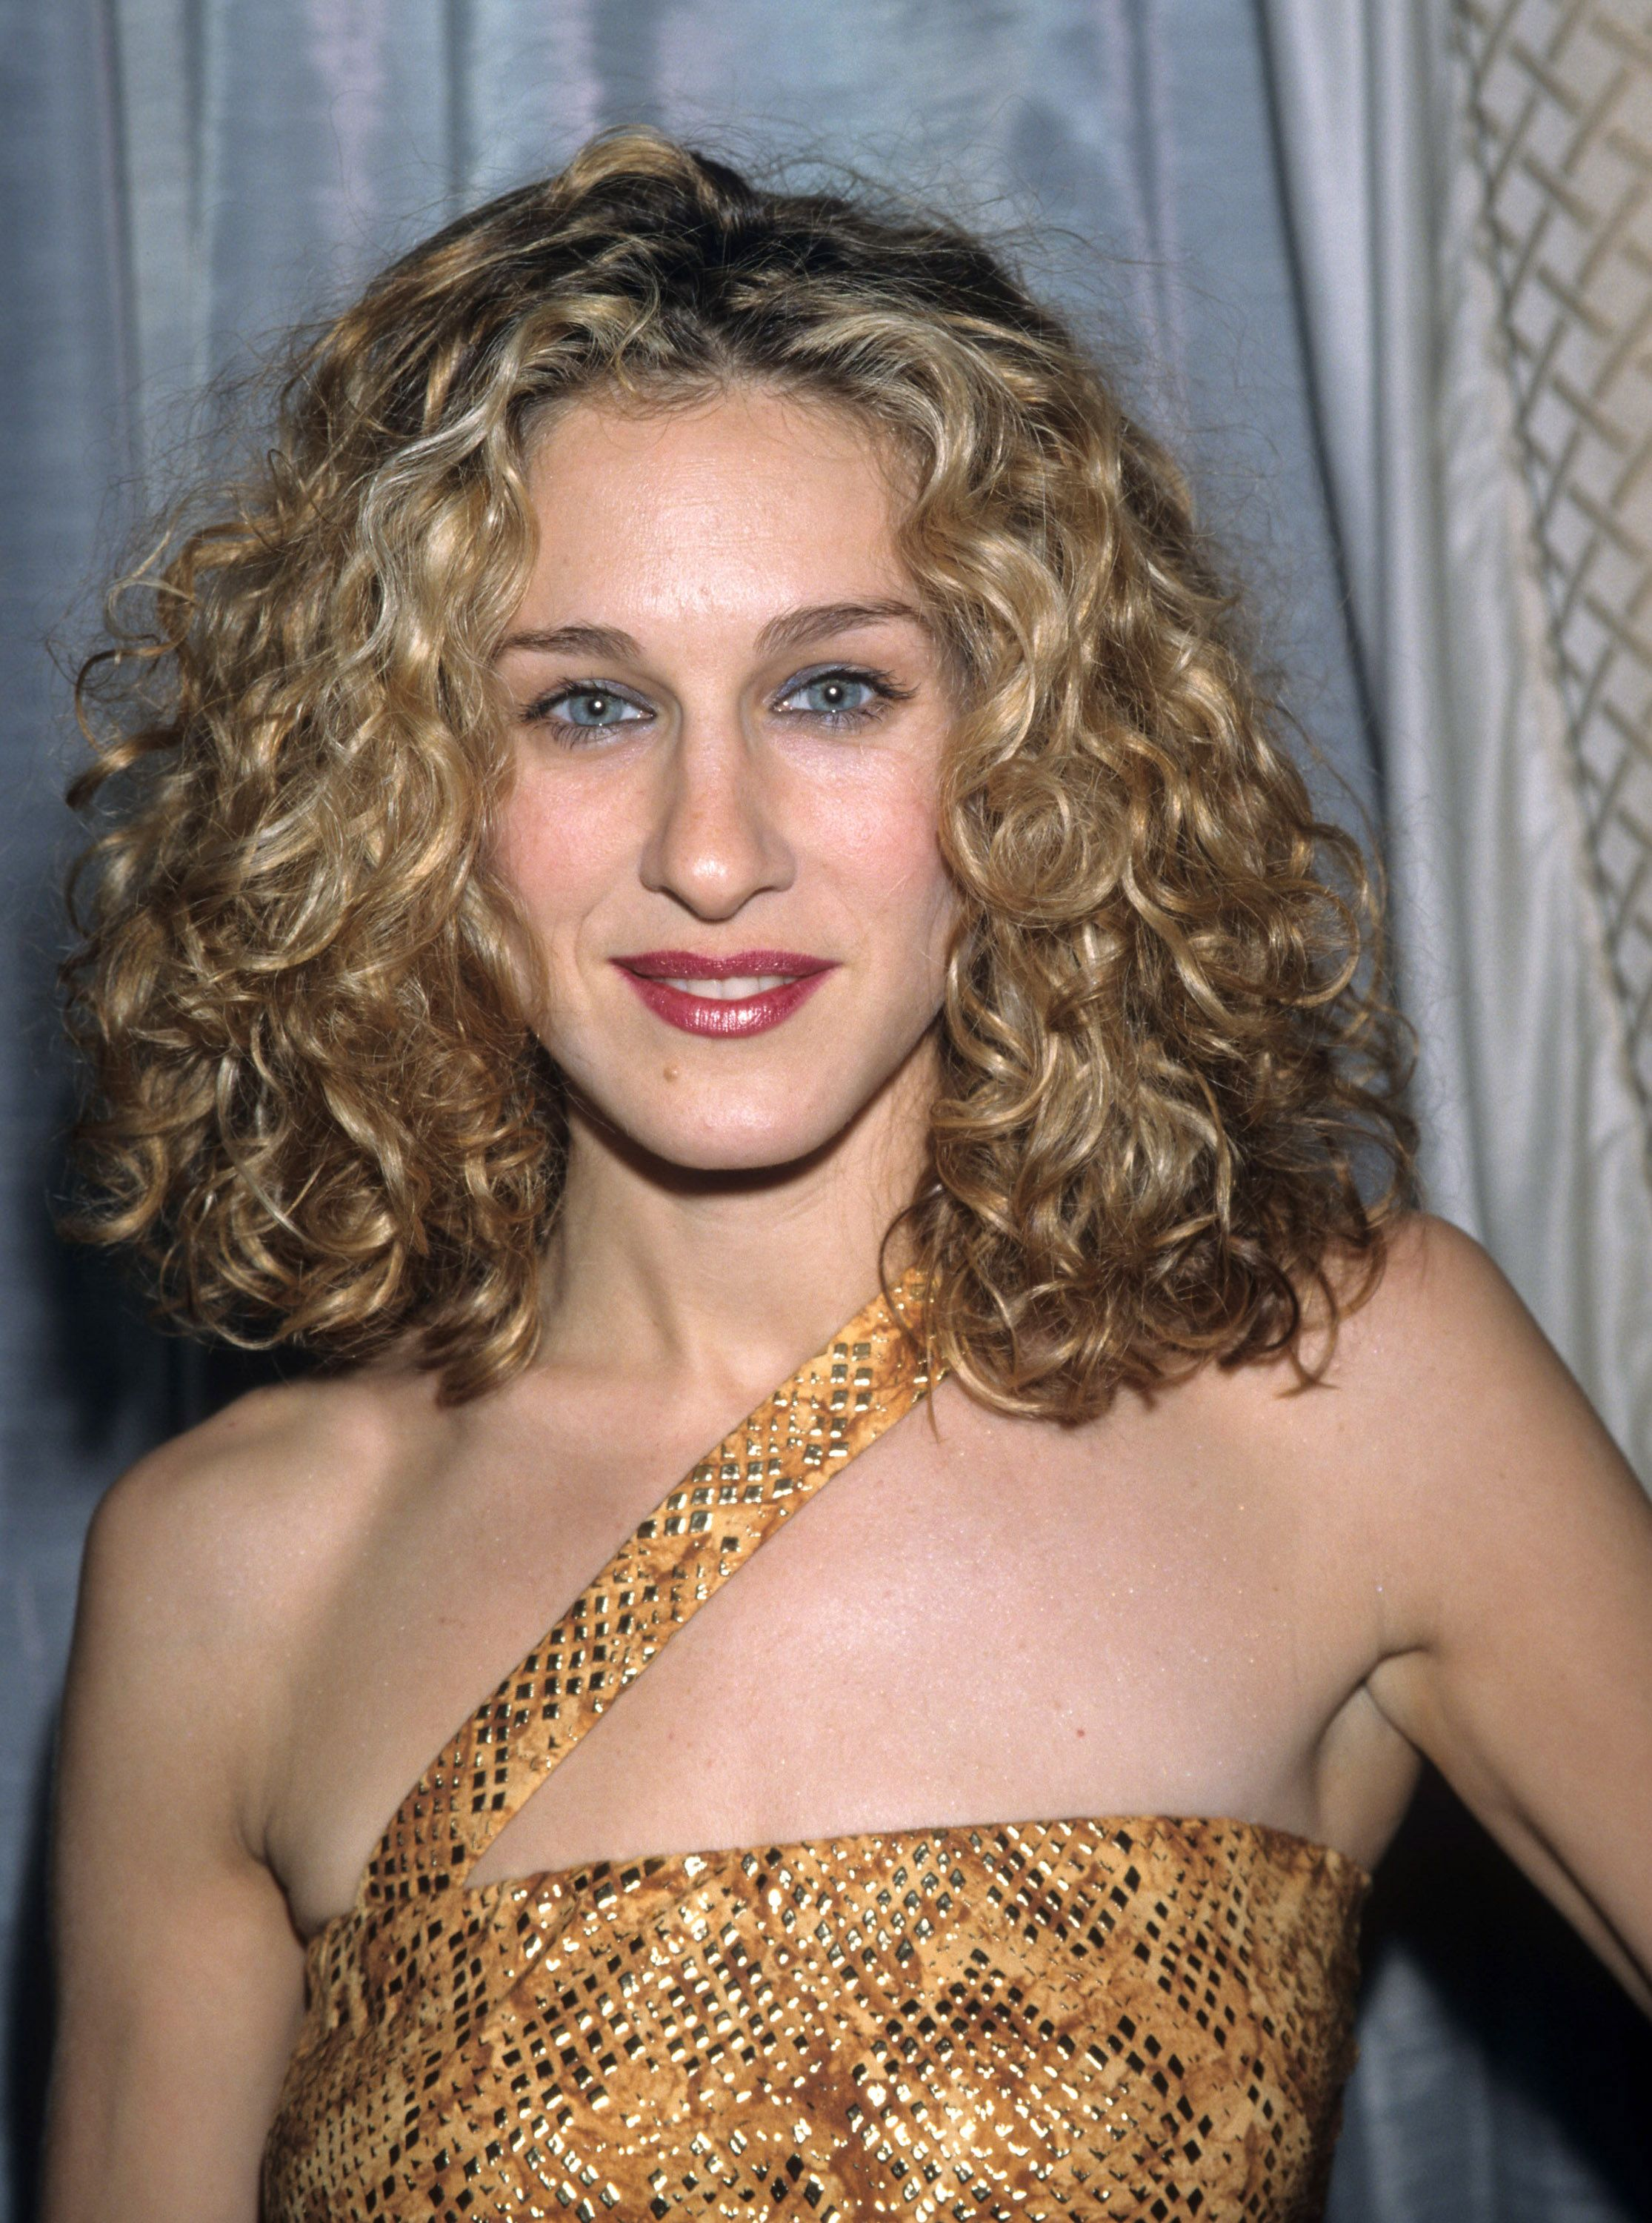 13 Trendy 90s Hairstyles That You Definitely Rocked Back In